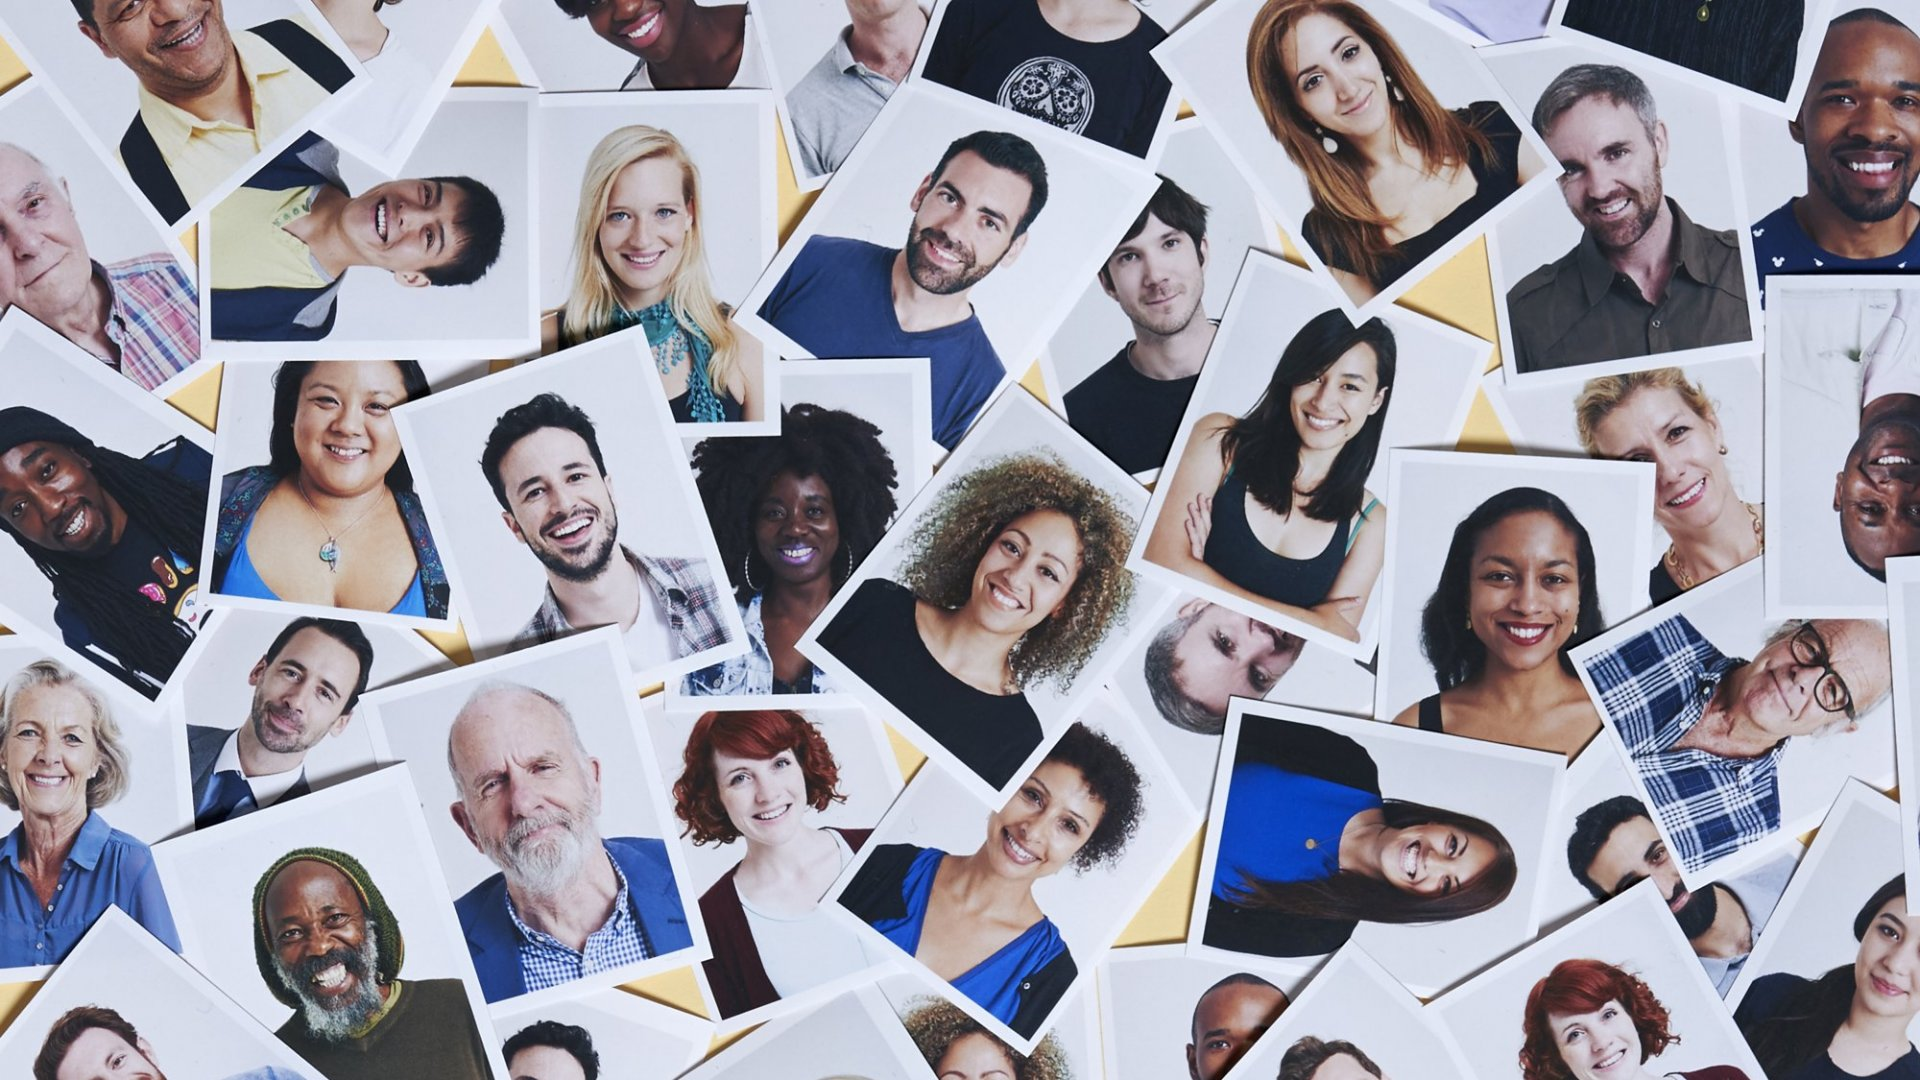 9 Diversity Factors That Will Increase Team Creativity